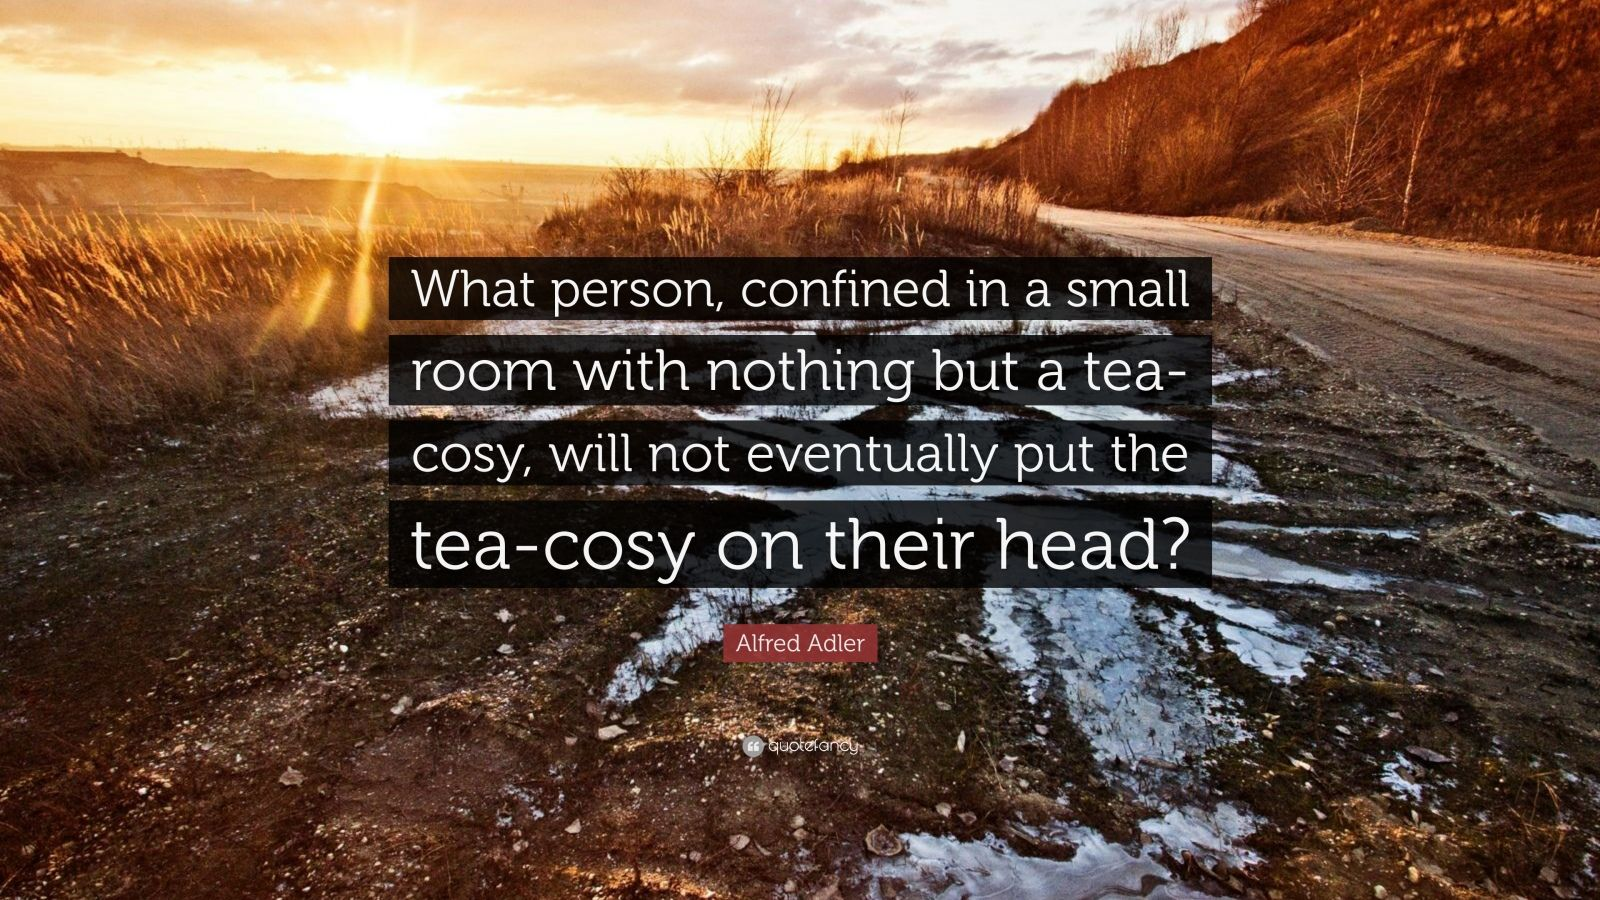 """Alfred Adler Quote: """"What person, confined in a small room with nothing but a tea-cosy, will not eventually put the tea-cosy on their head?"""""""